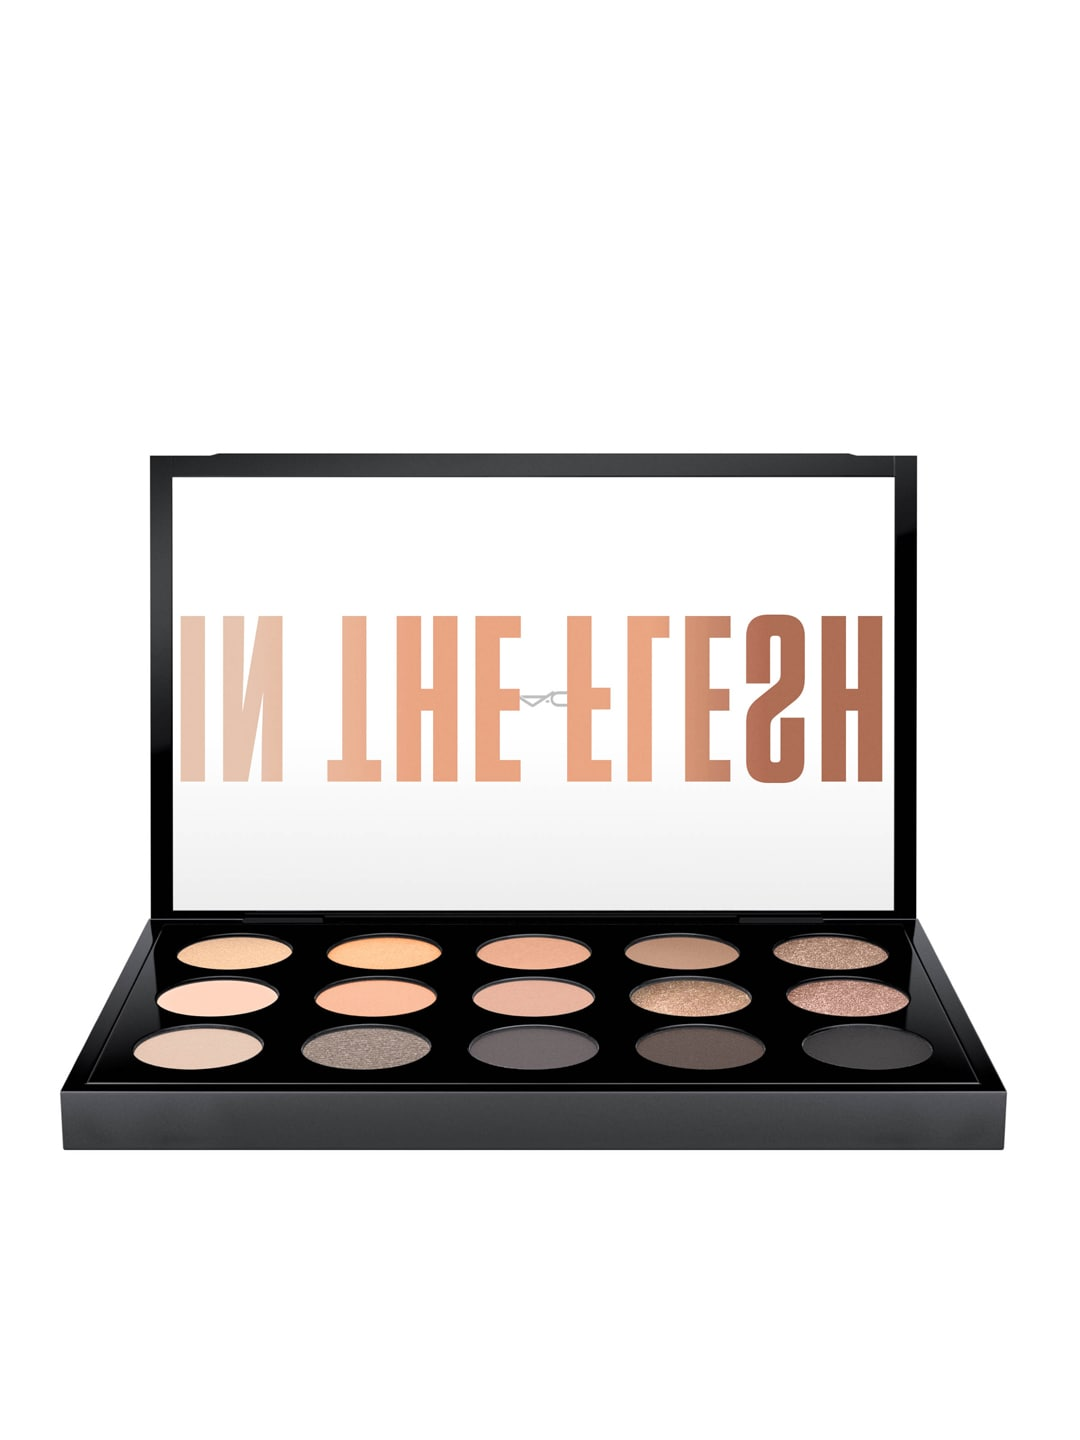 M.A.C EYES ON M.A.C Eye Shadow x 9: In The Flesh Eye Shadow Palette image